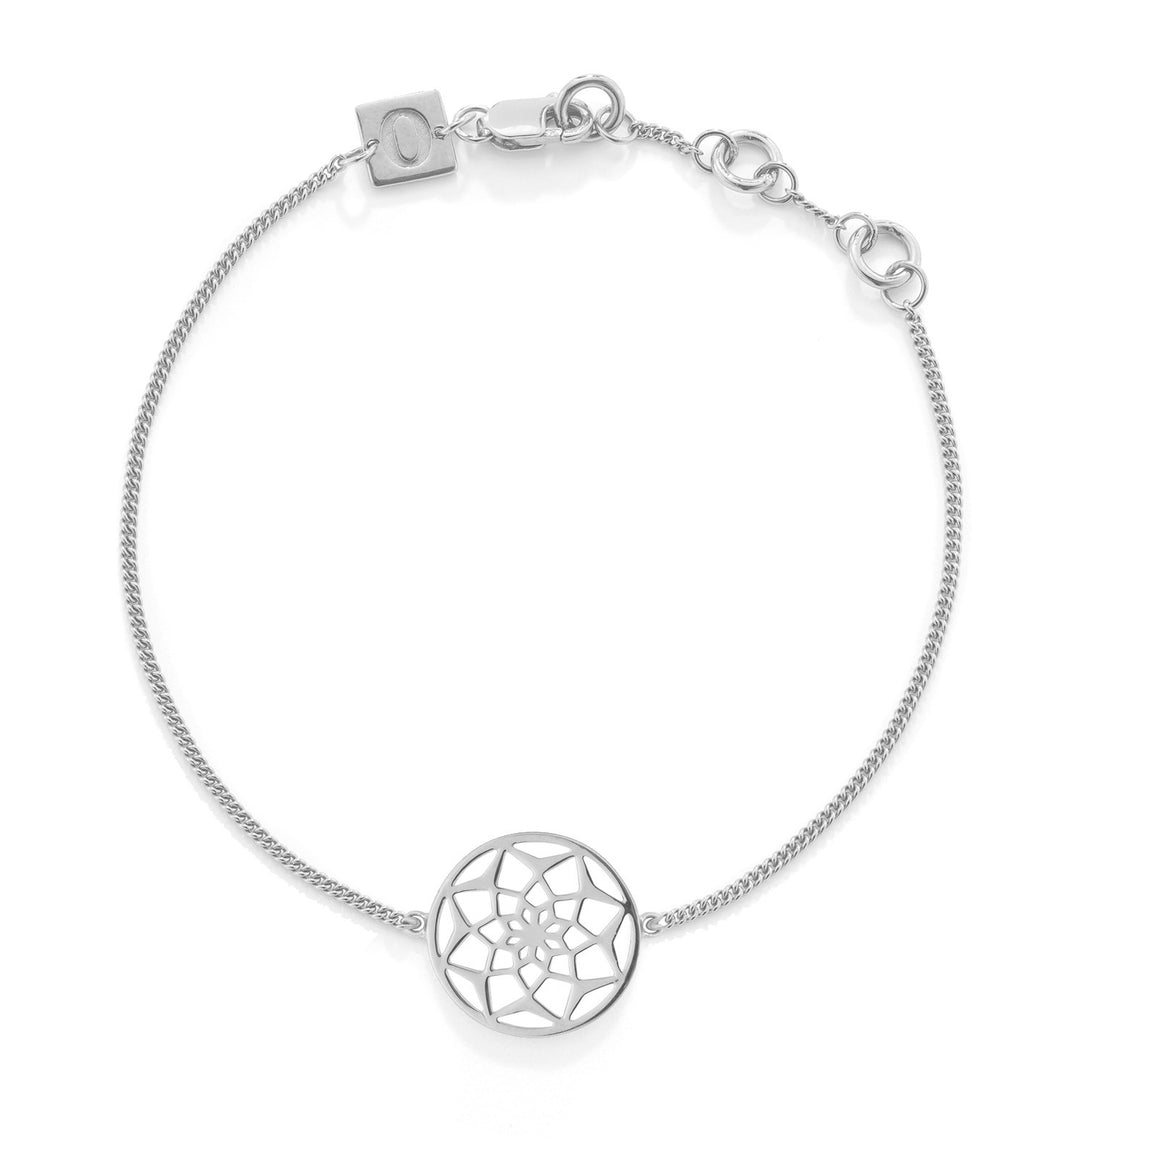 The Original Dreamcatcher Bracelet, Silver